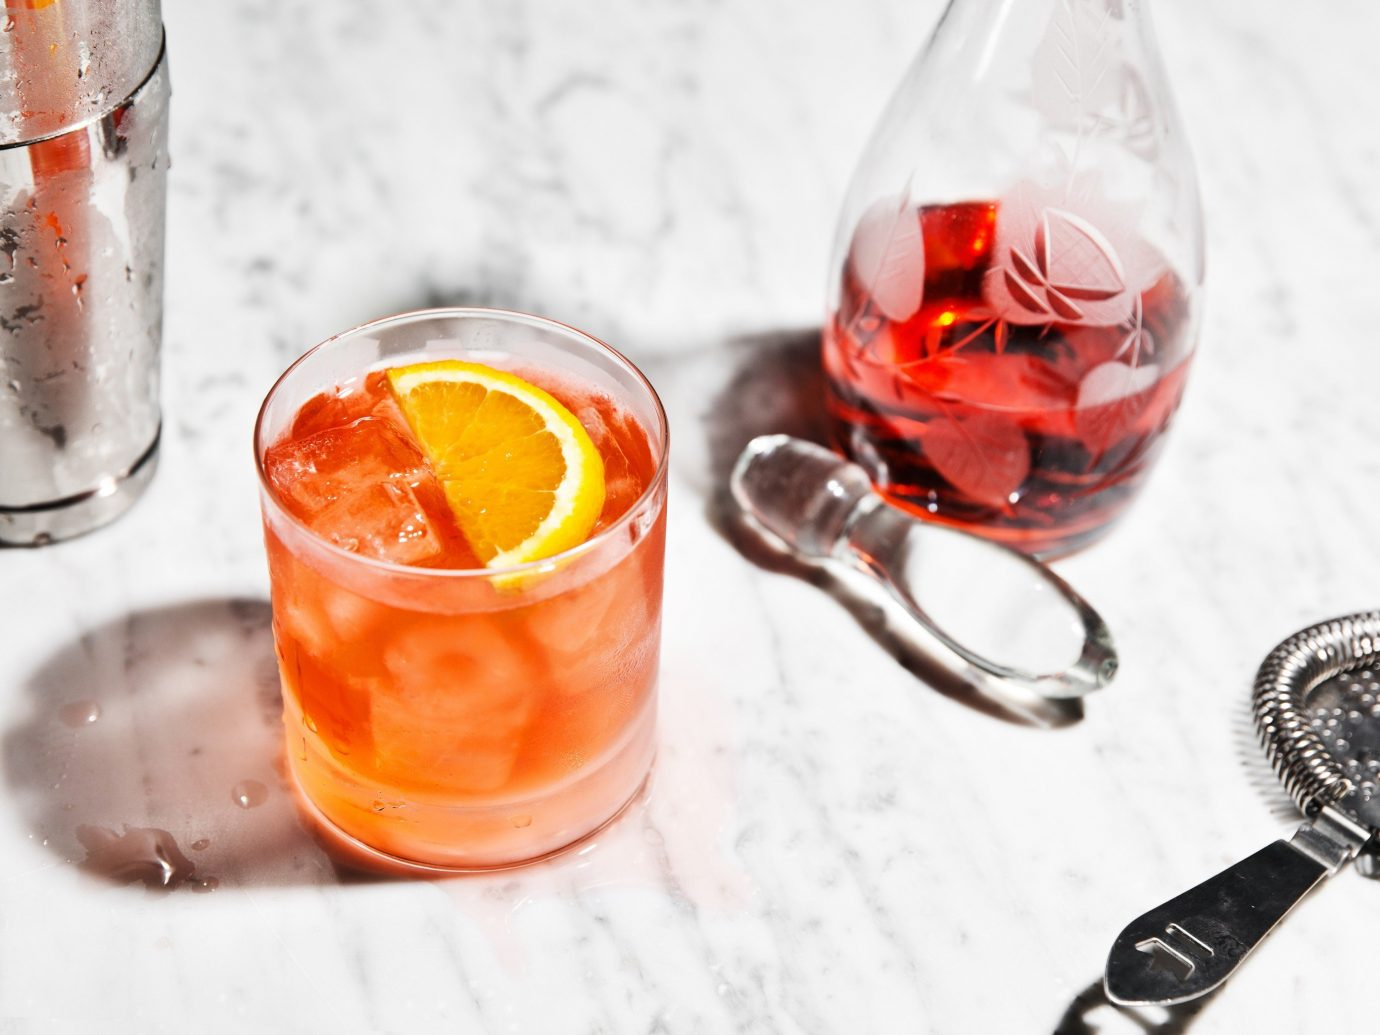 Summer Series cup Drink alcoholic beverage cocktail distilled beverage produce negroni food spritz punch